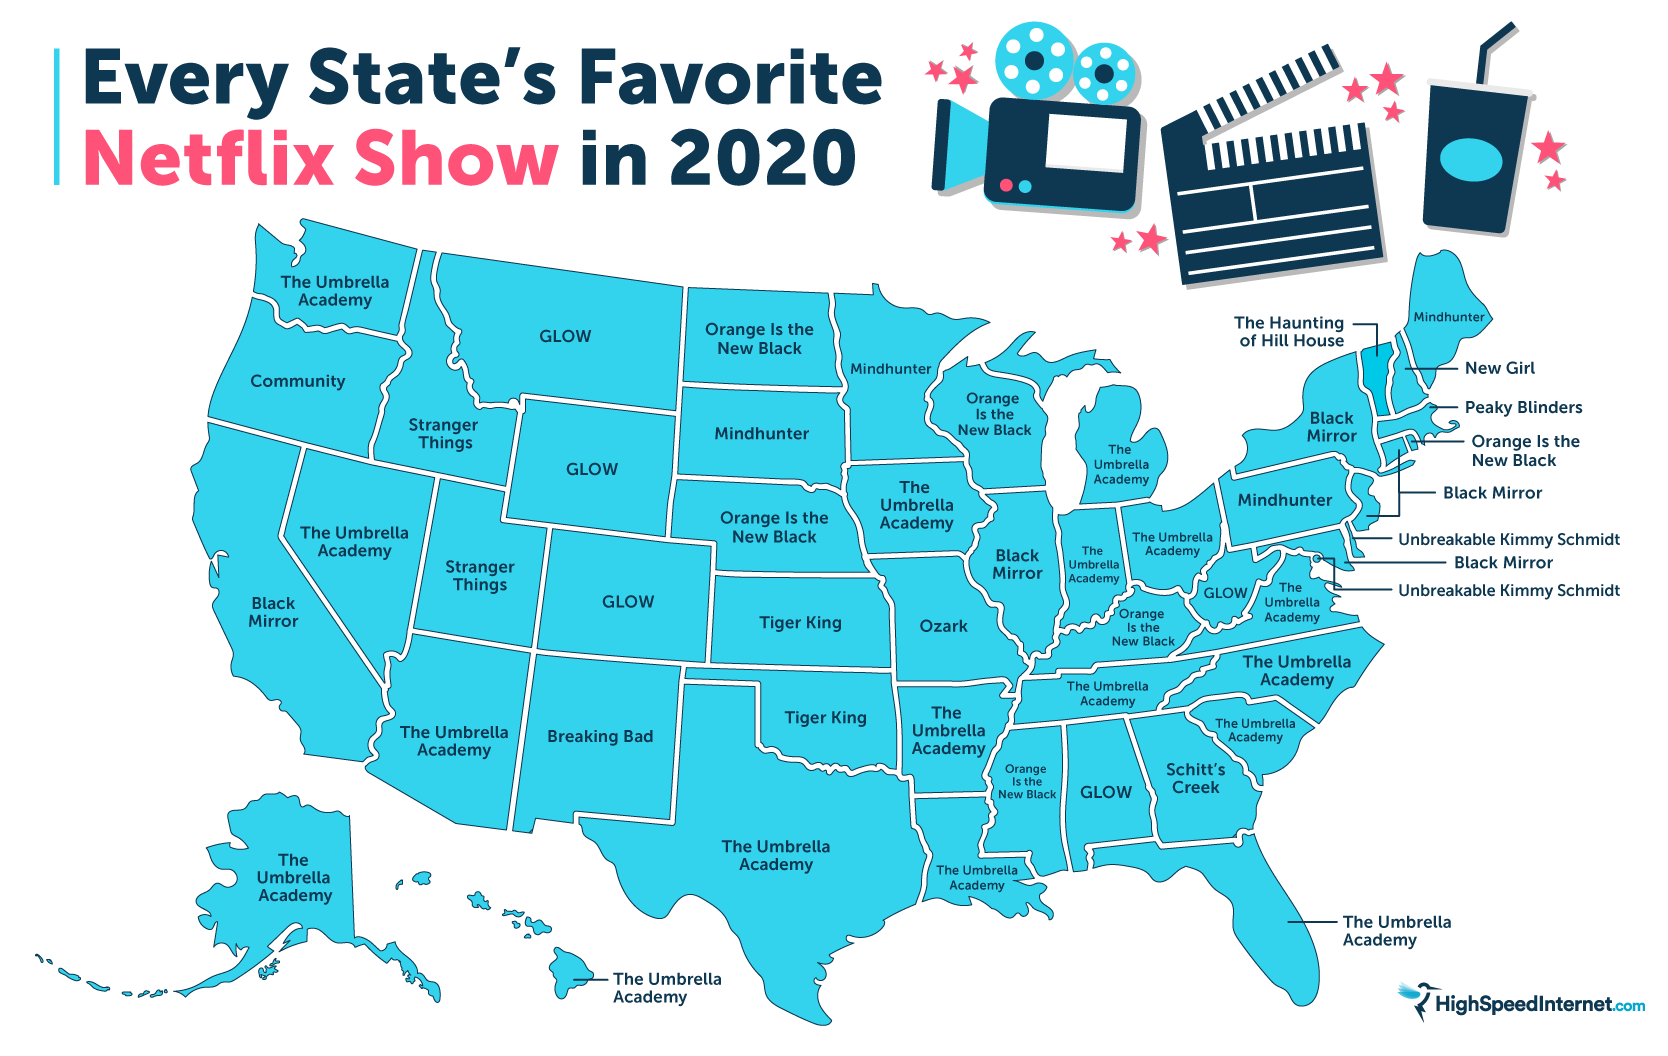 Every State's Favorite Netflix Show in 2020